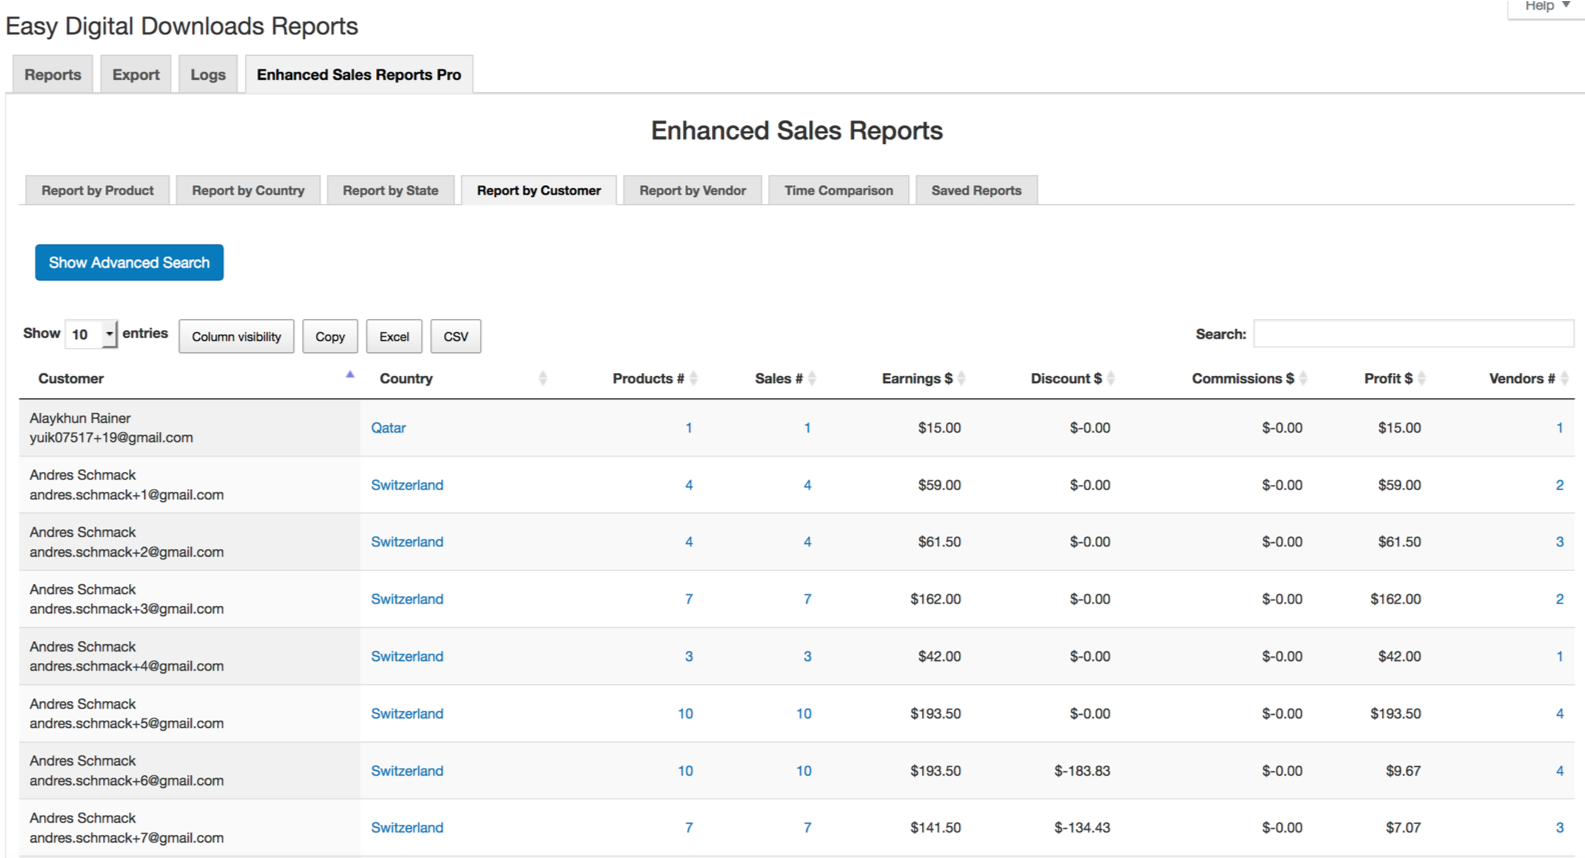 EDD Enhanced Sales Reports Pro Plugin Report by Customer